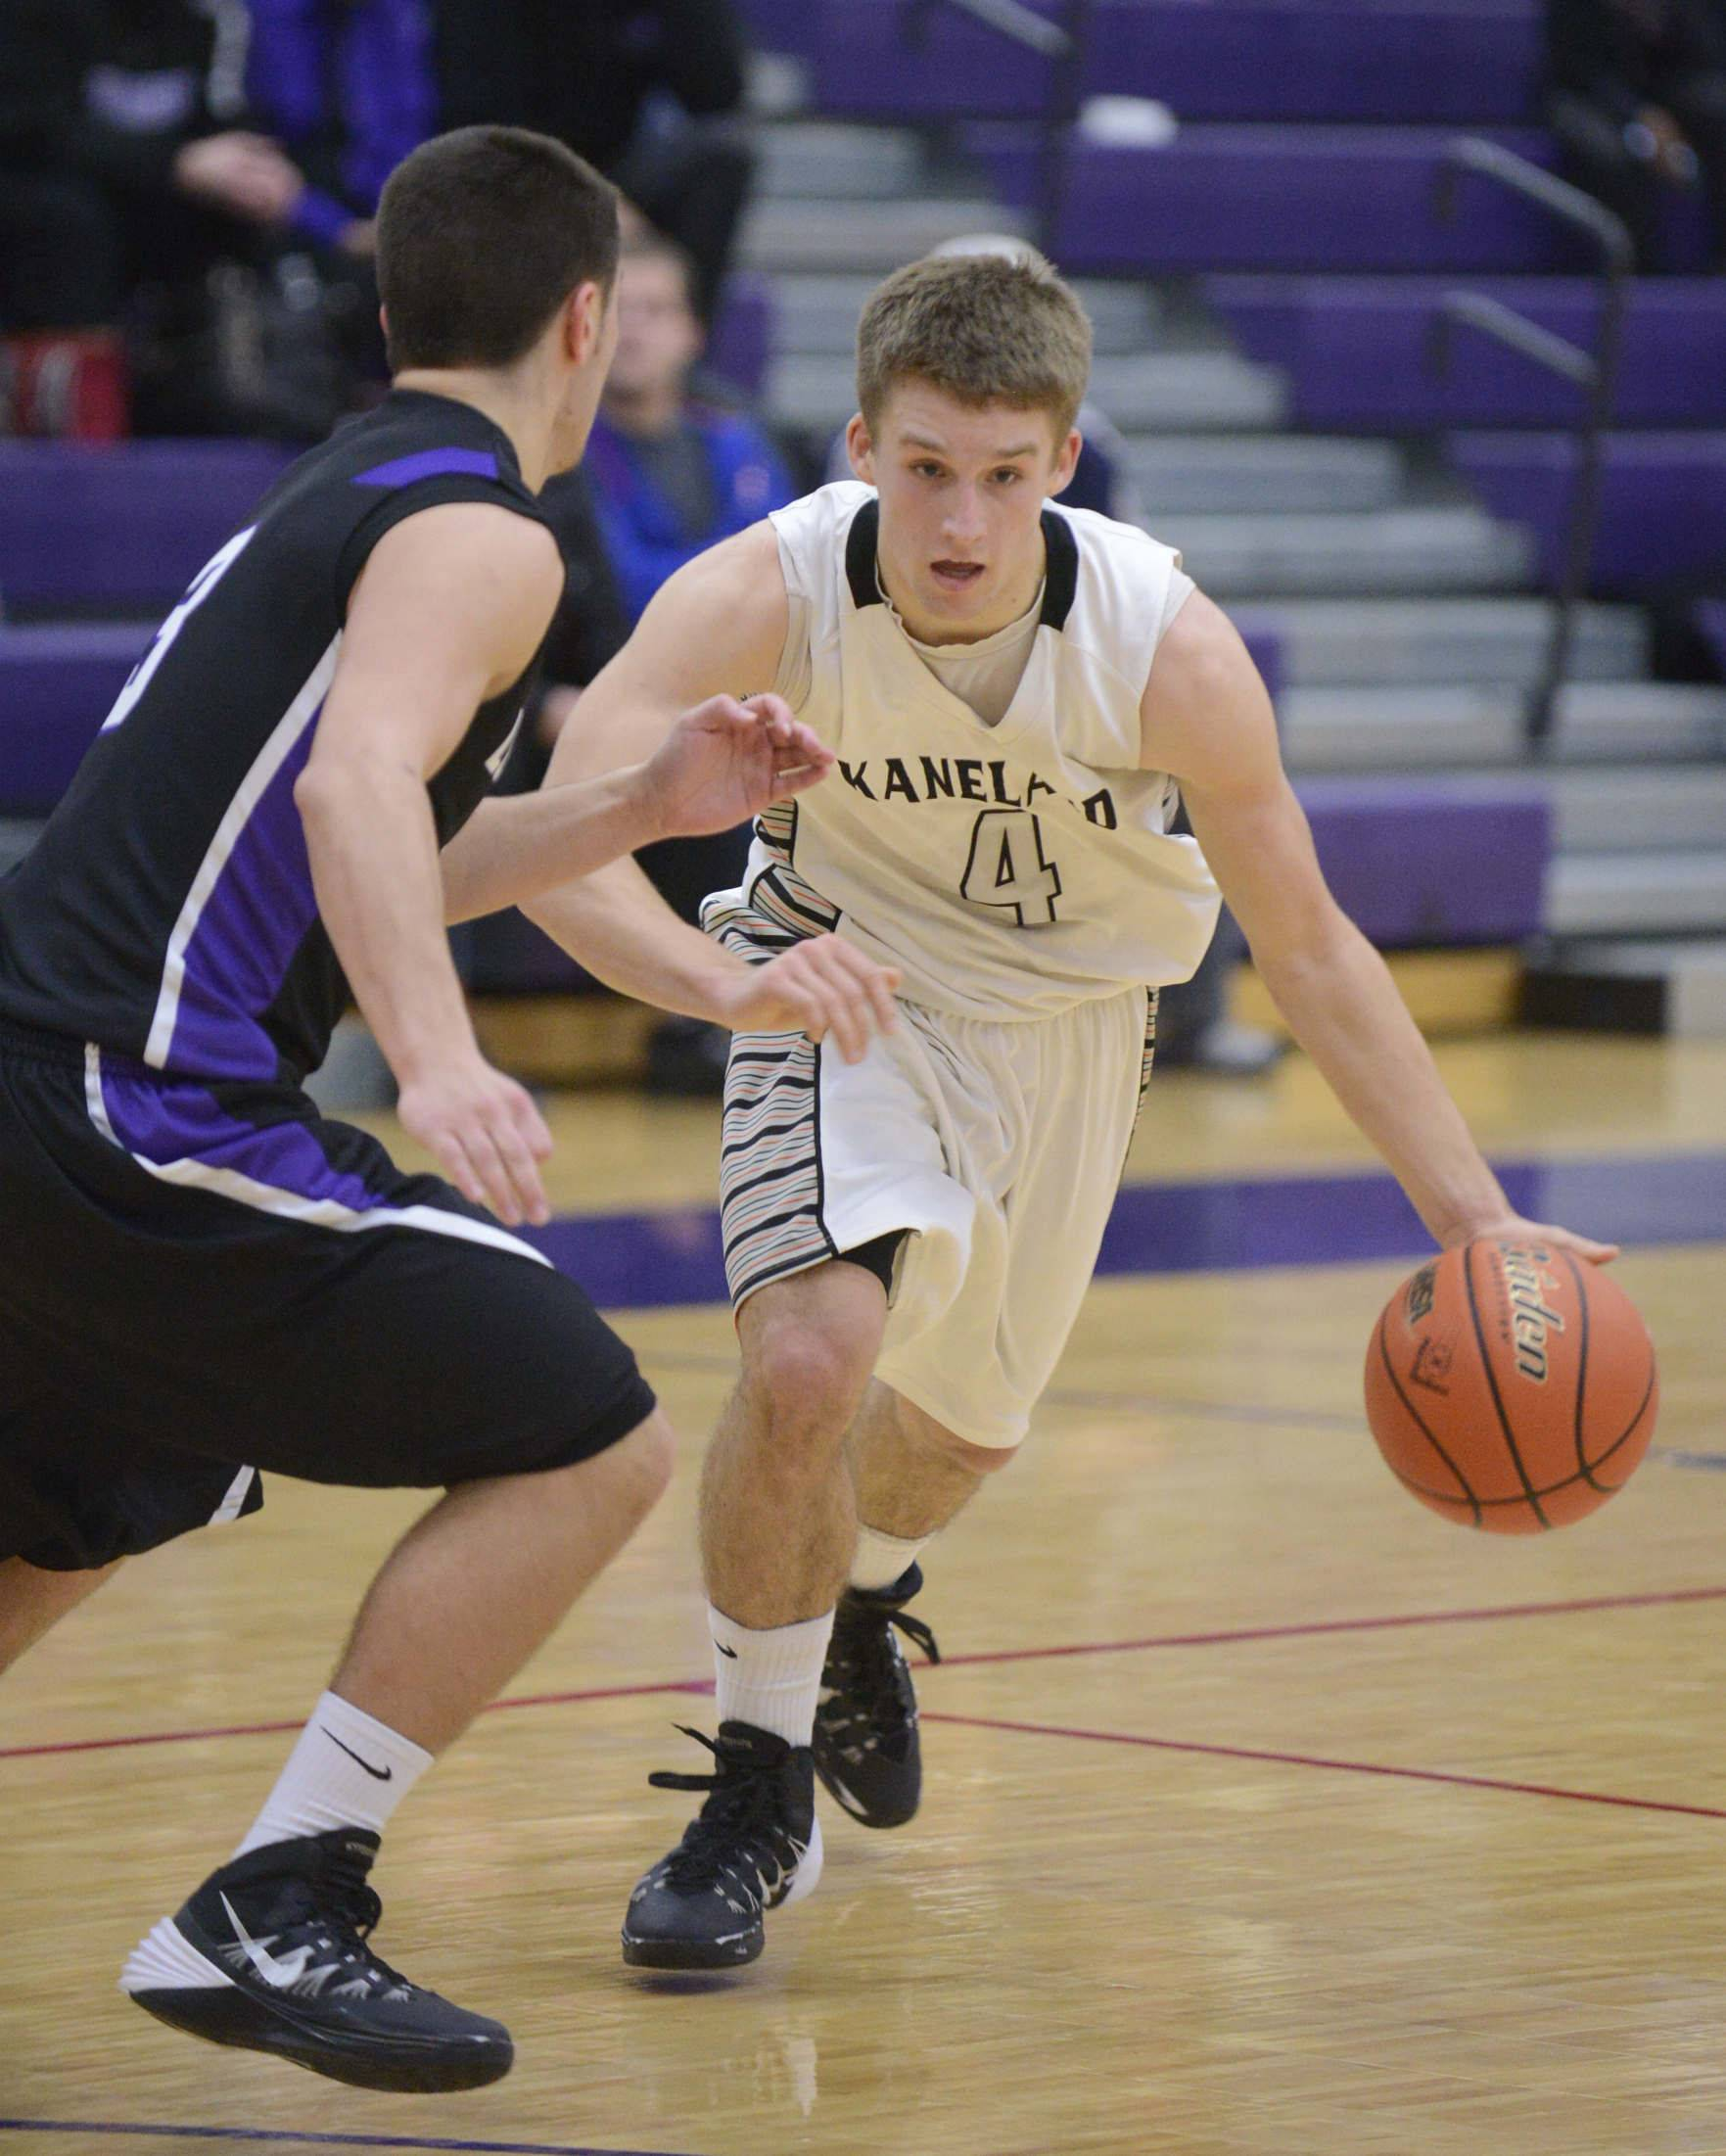 Images from the Kaneland vs. Rockford Lutheran boys basketball sectional semifinal Tuesday, March 11, 2014 in Hampshire.